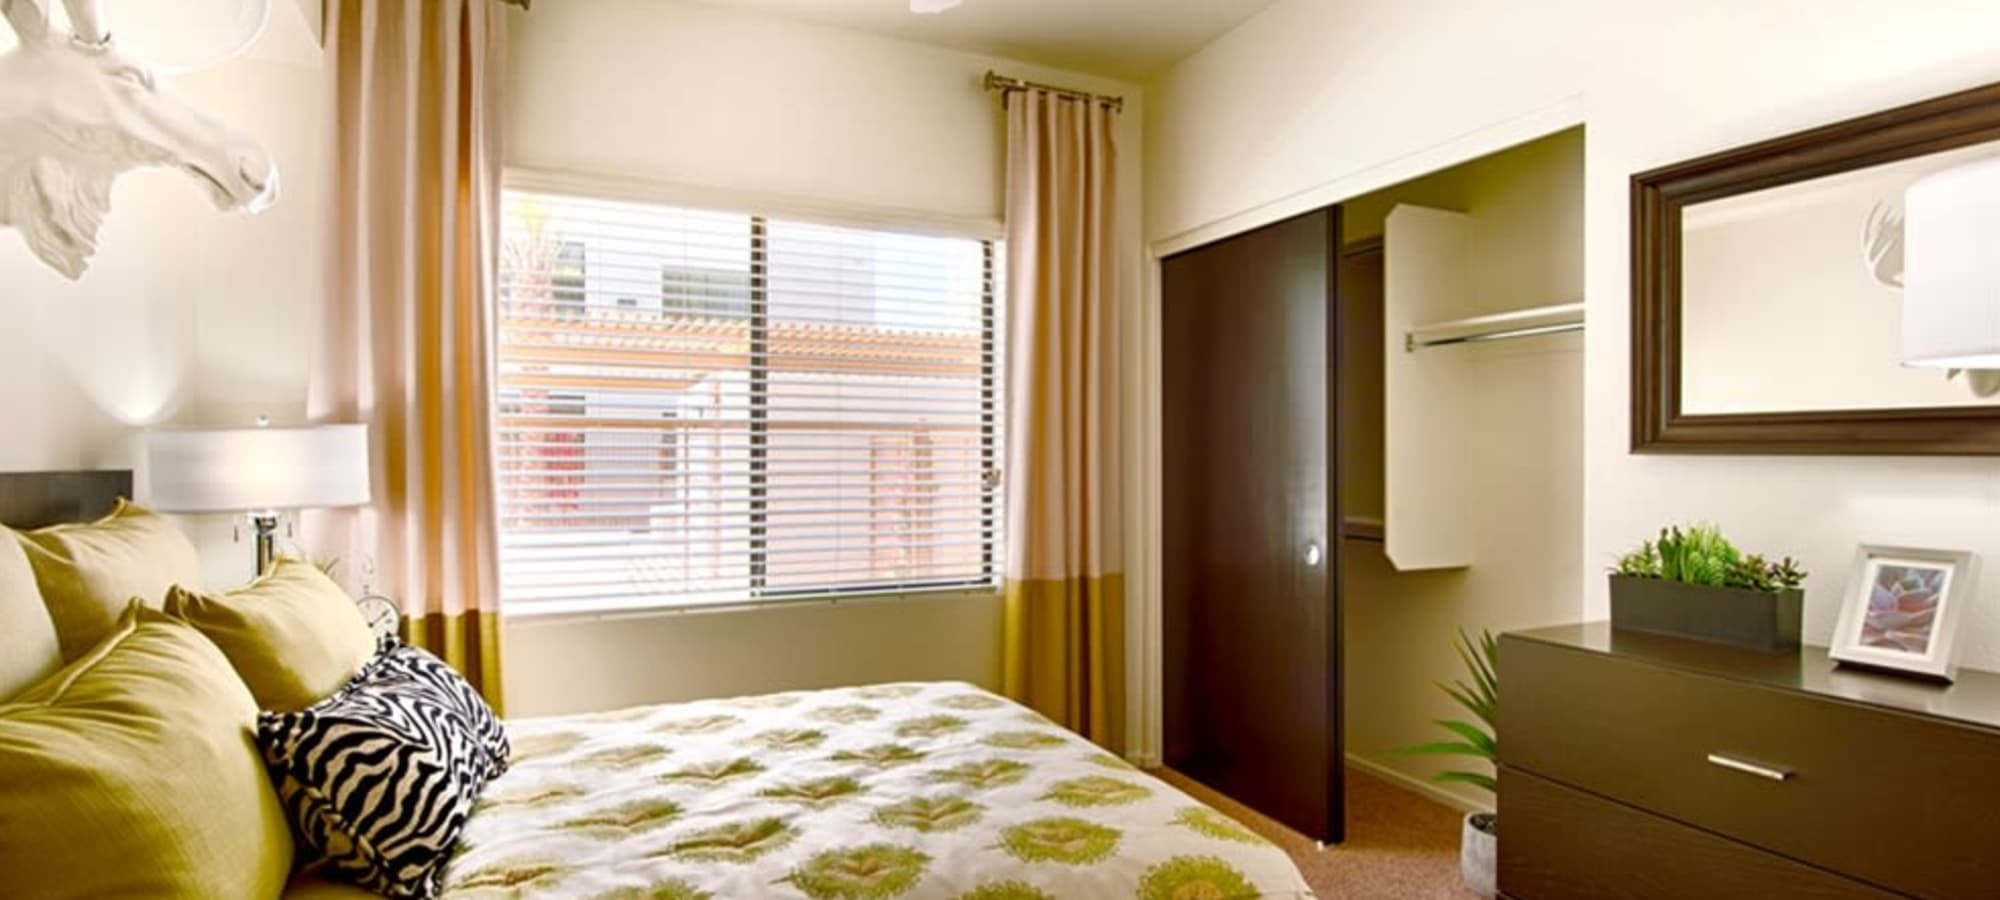 Bedroom with walk-in closets in model home at Cactus Forty-2 in Phoenix, Arizona